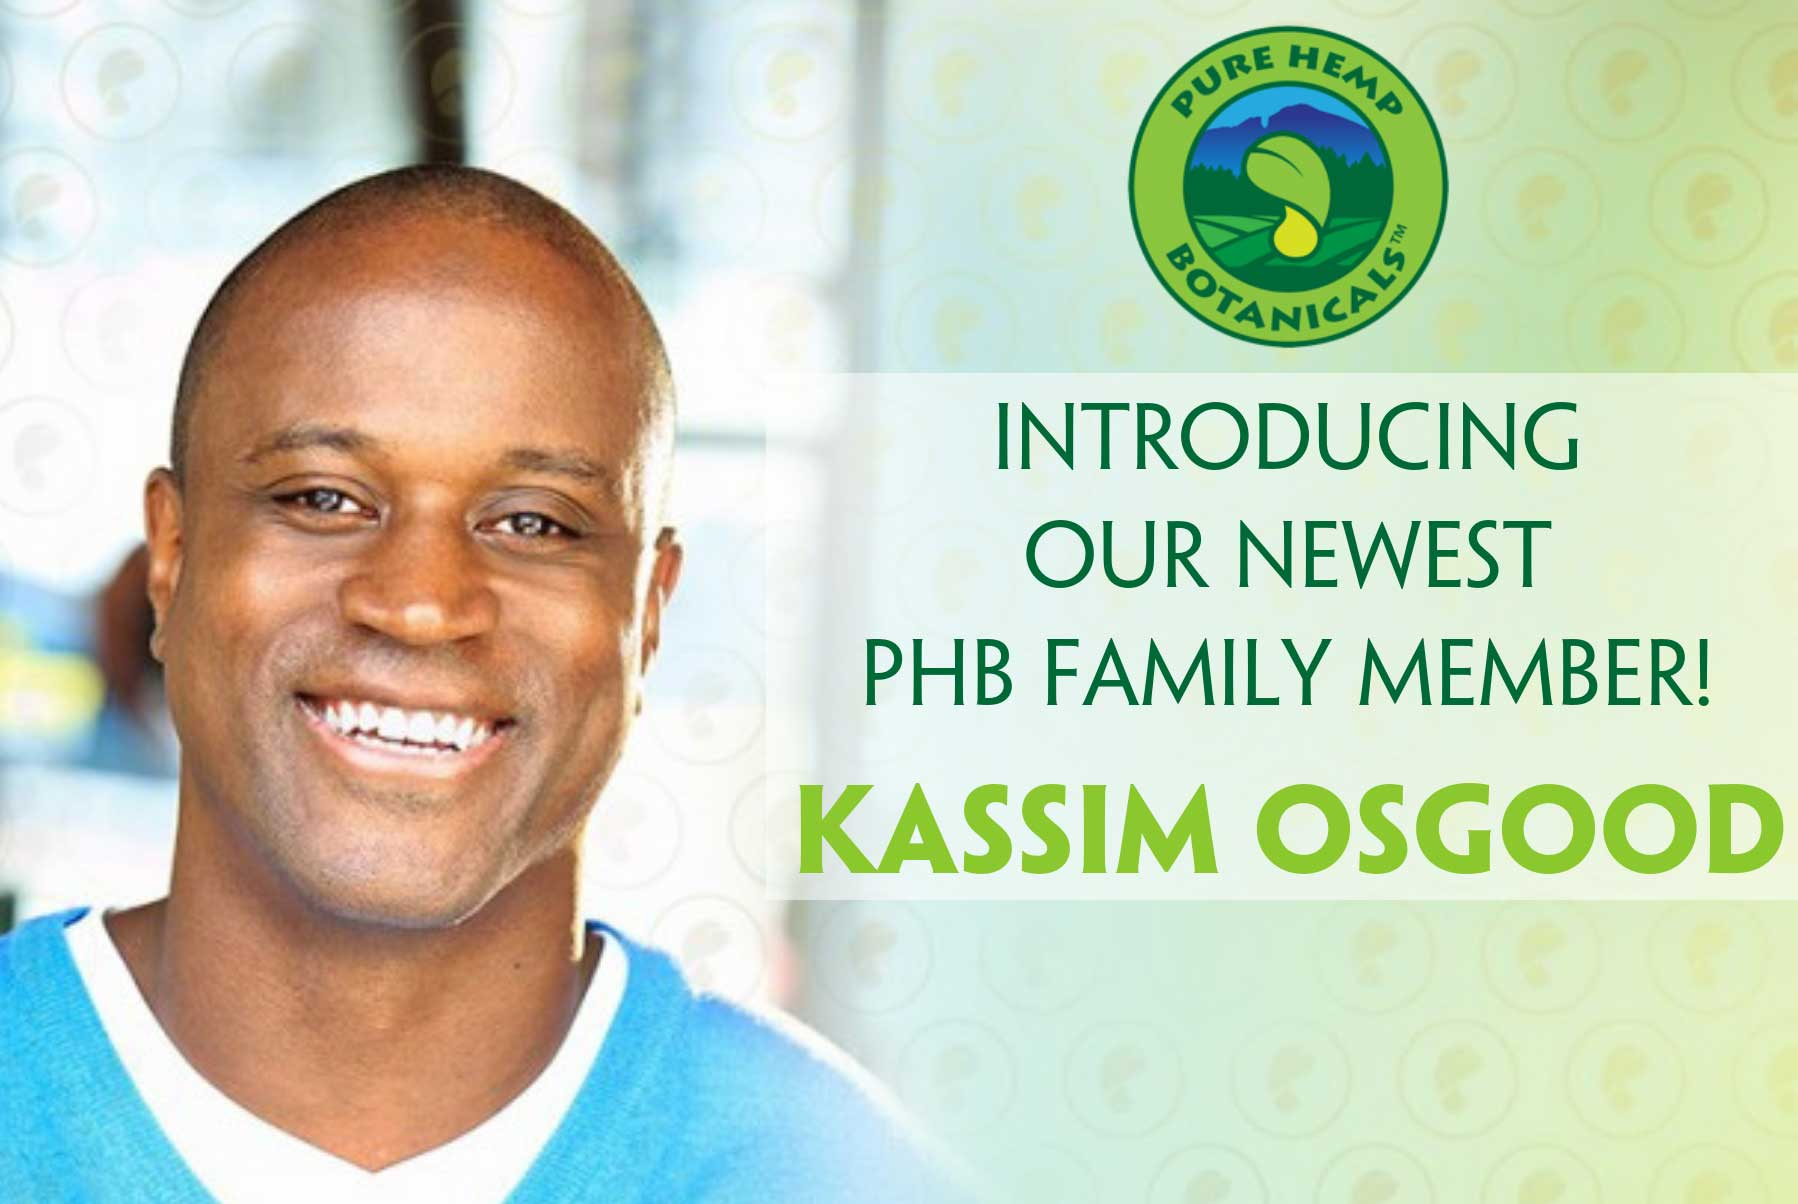 Introducing Our Newest PHB Family Member: Kassim Osgood!